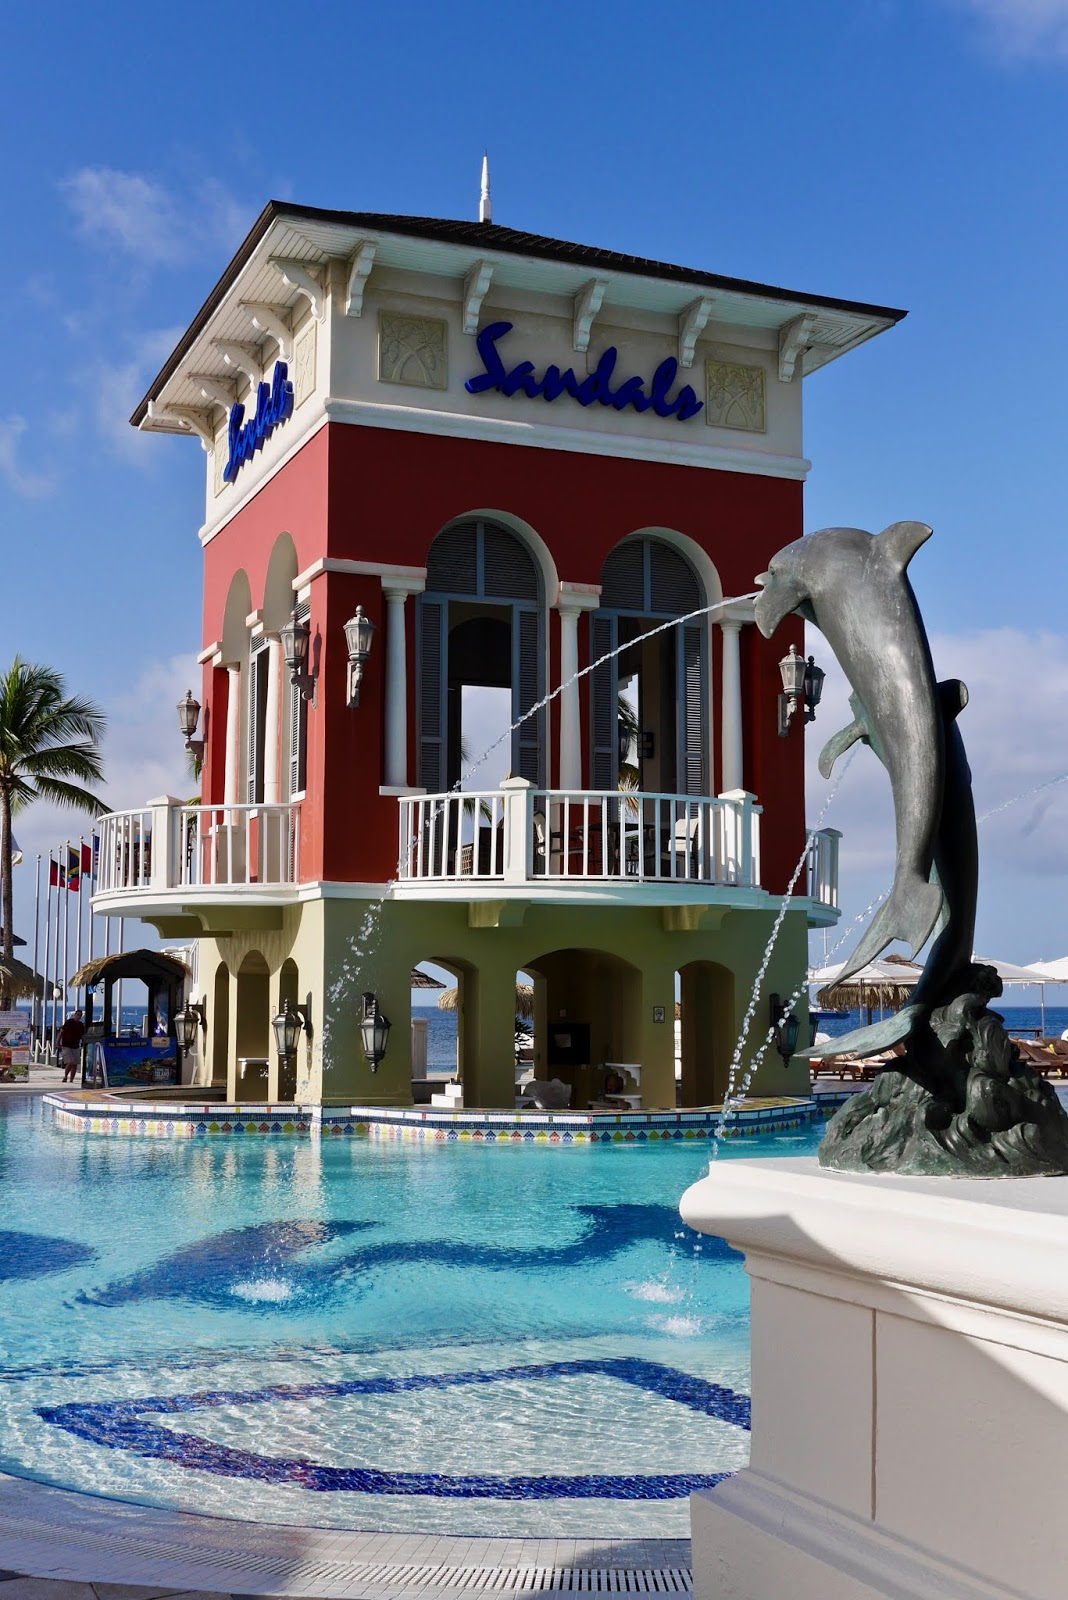 Pool Bar at Sandals Grande St Lucia, Sandals Grande St Lucia Review